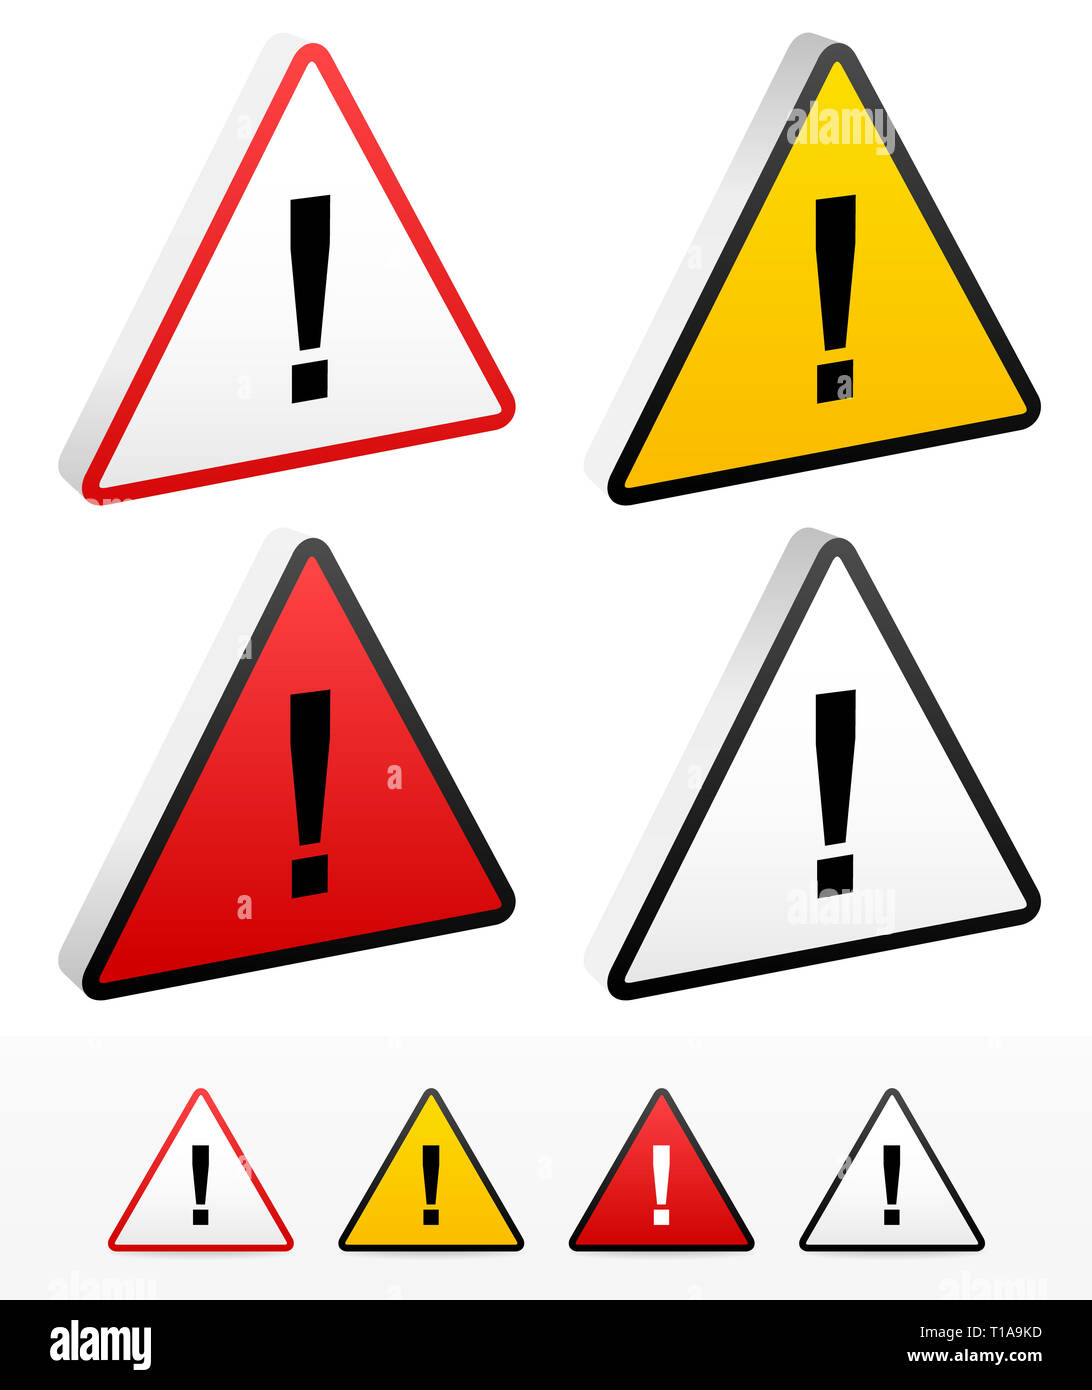 Triangular signs with exclmation marks. - Stock Image